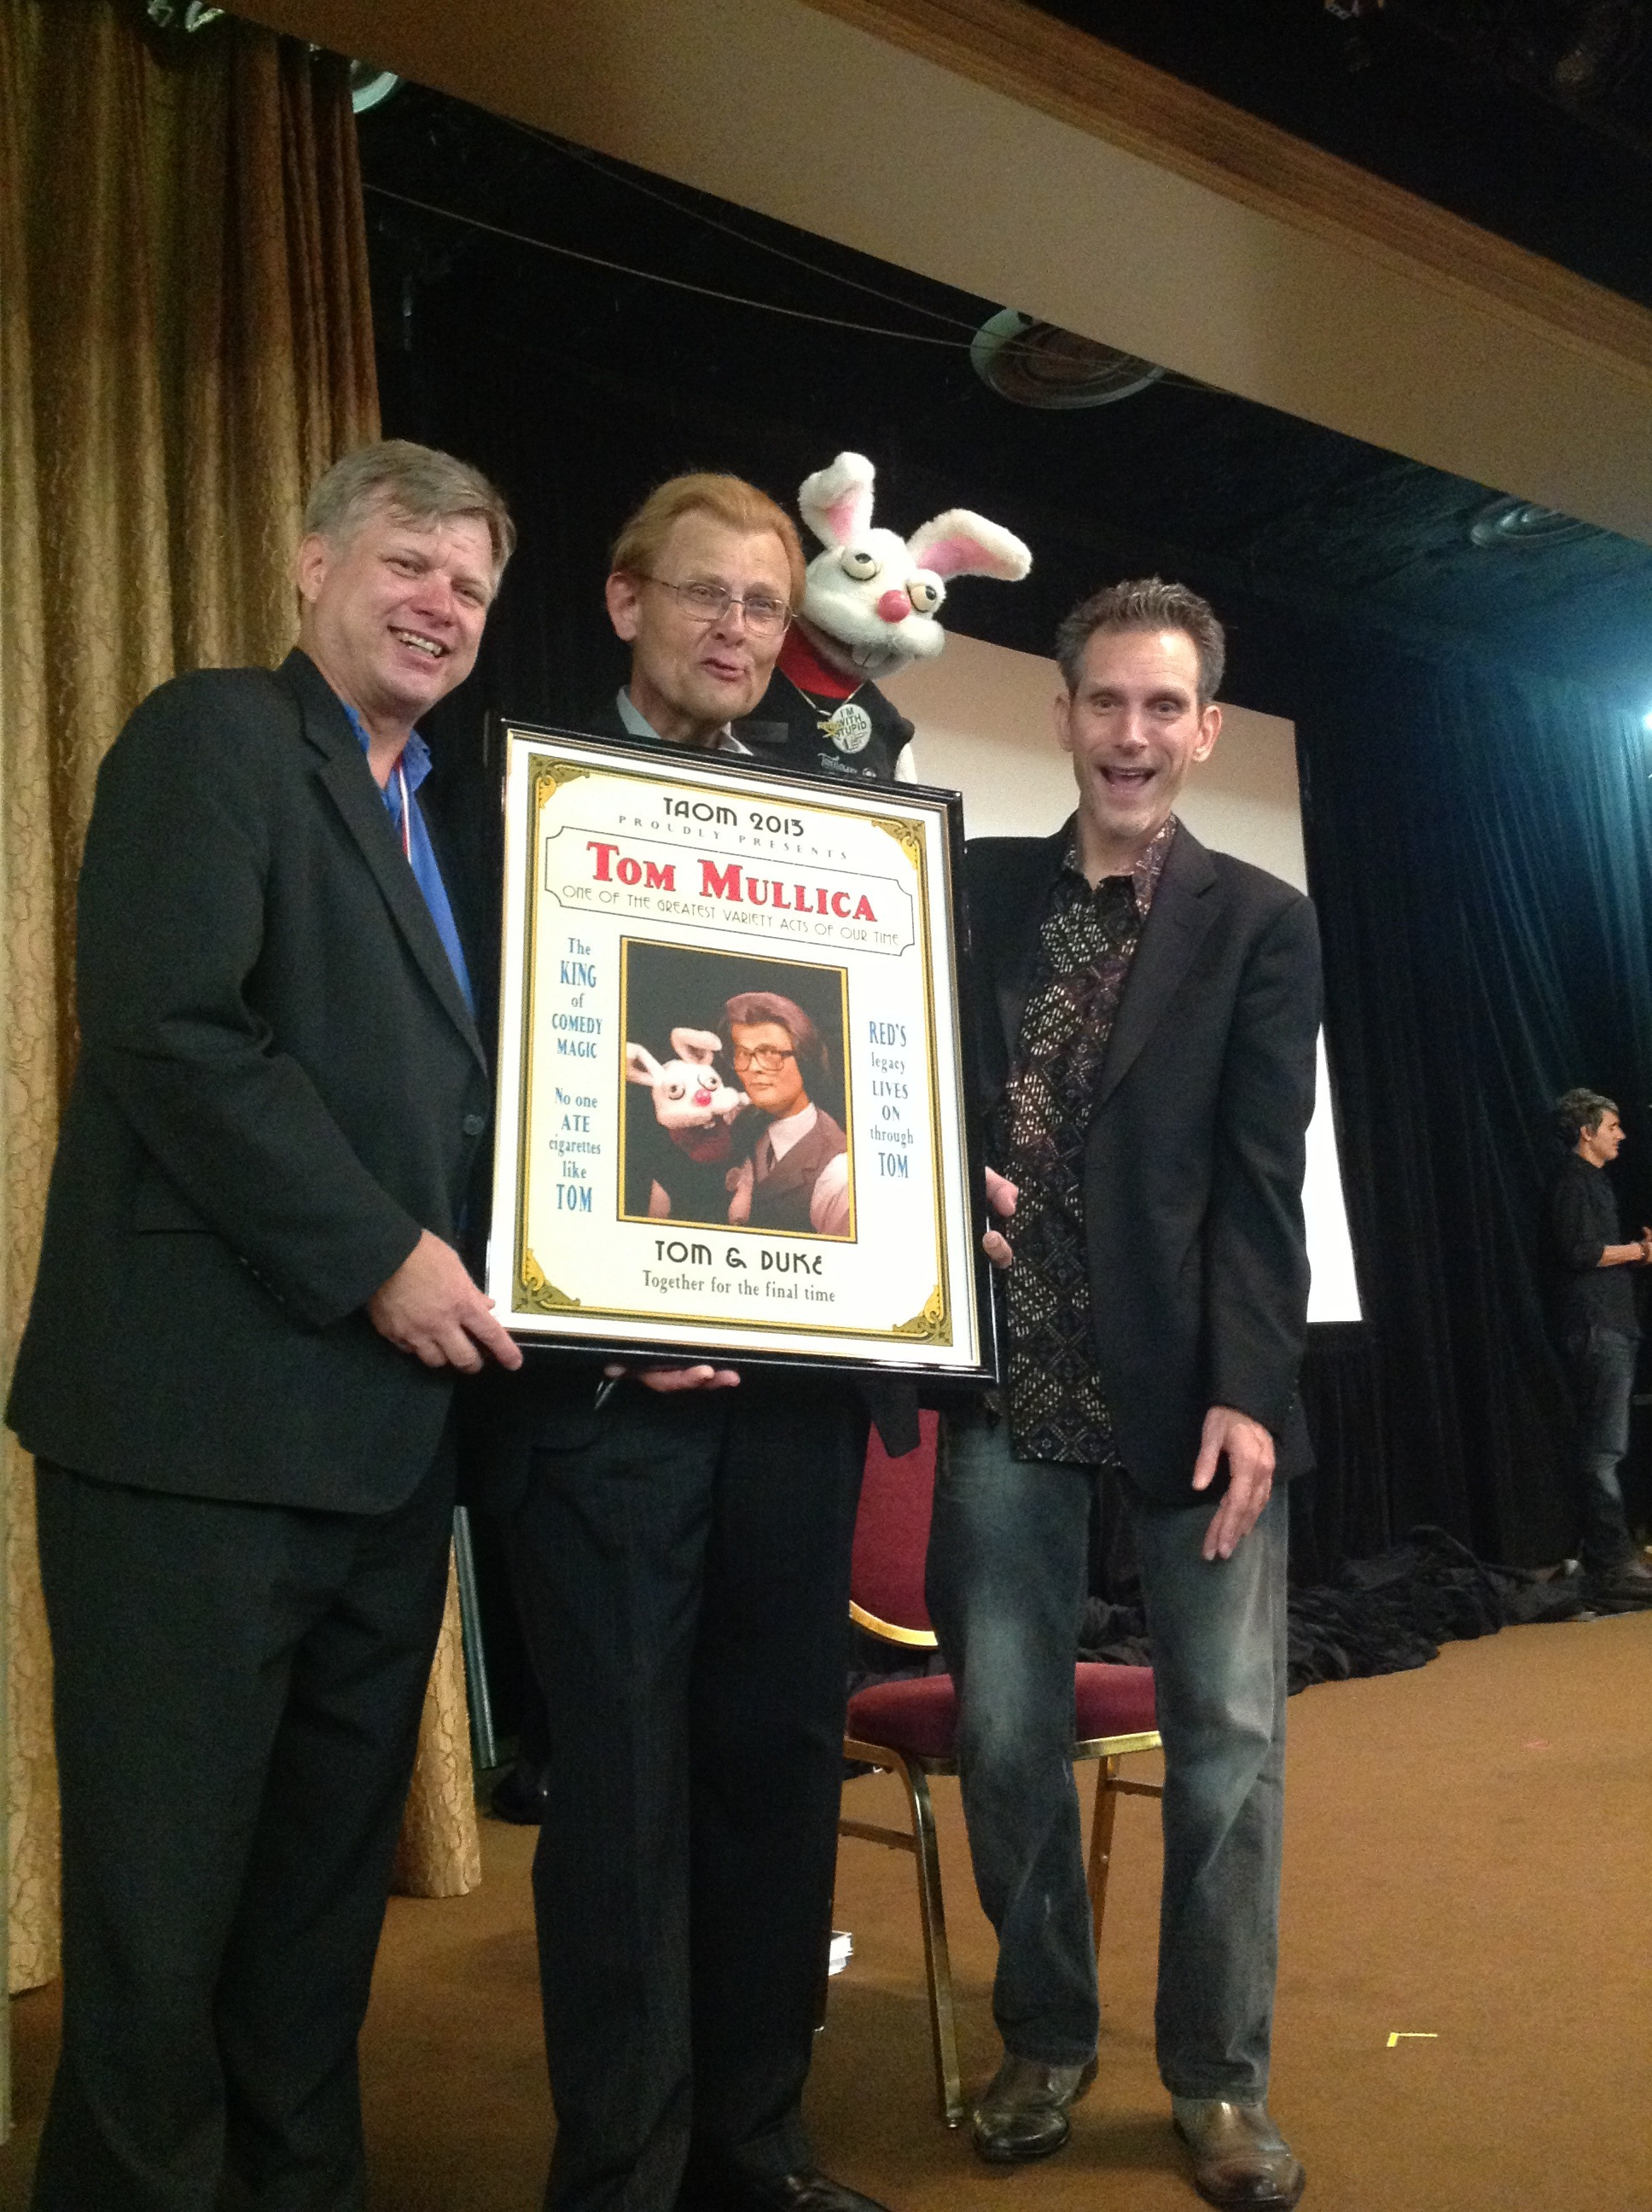 Tom Mullica accepts special poster from Mark Jensen and Chip Romero